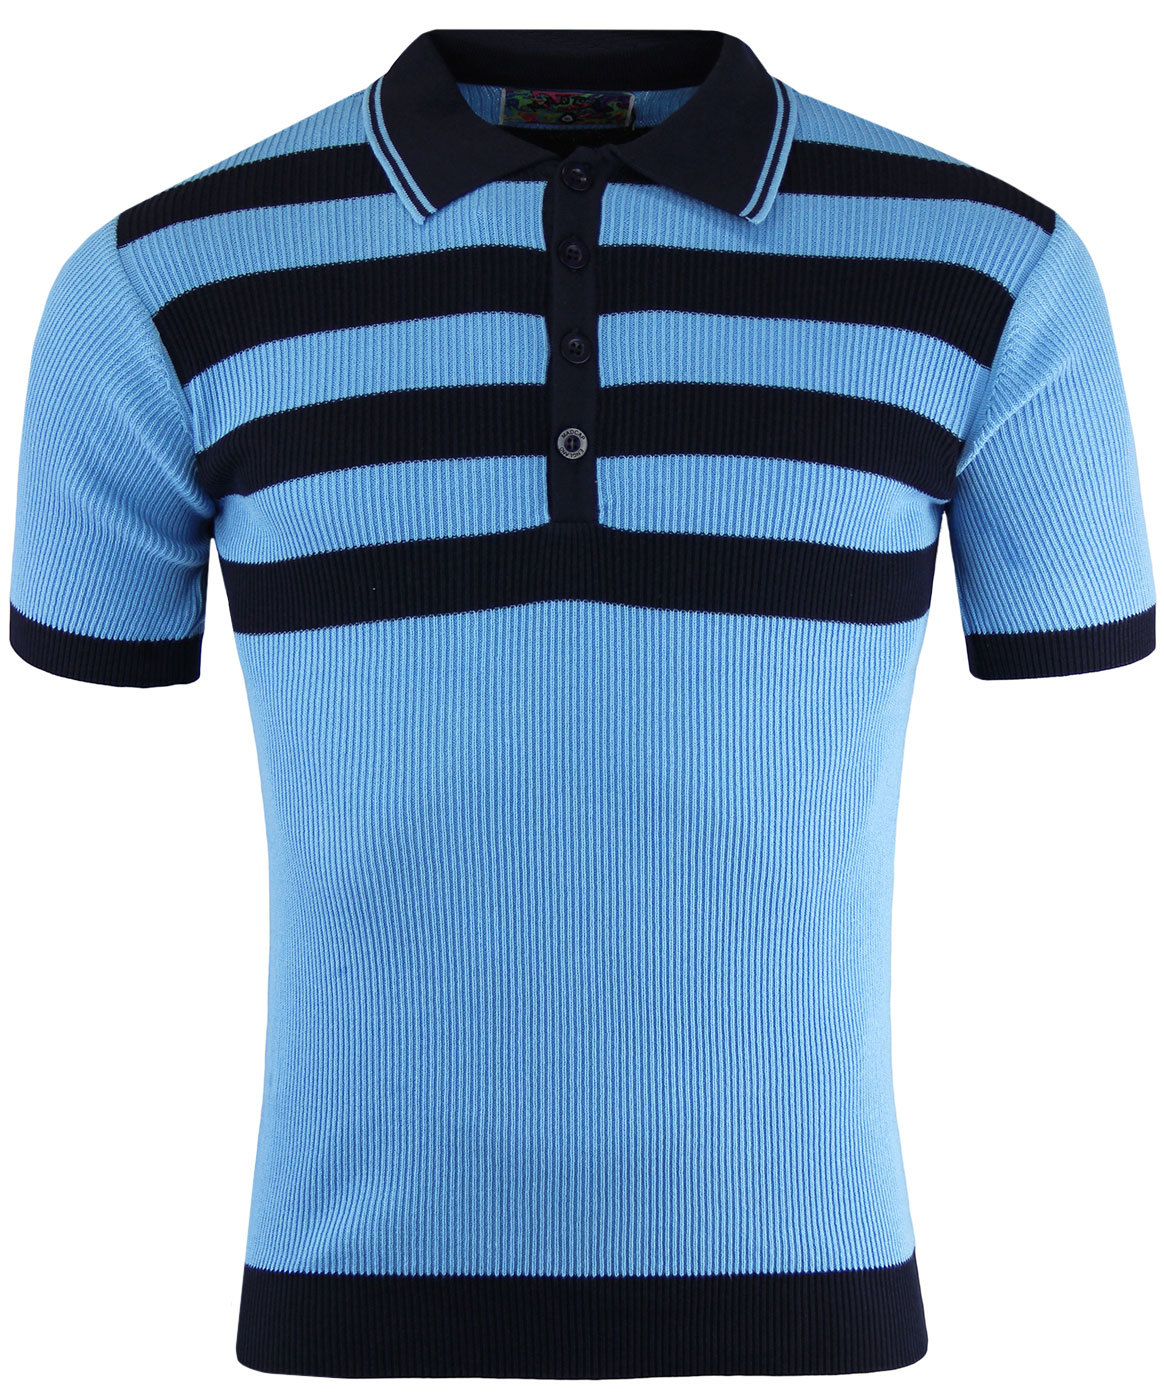 Terry Retro 1960s Mod Ribbed Polo Shirt with Chest Stripes ...